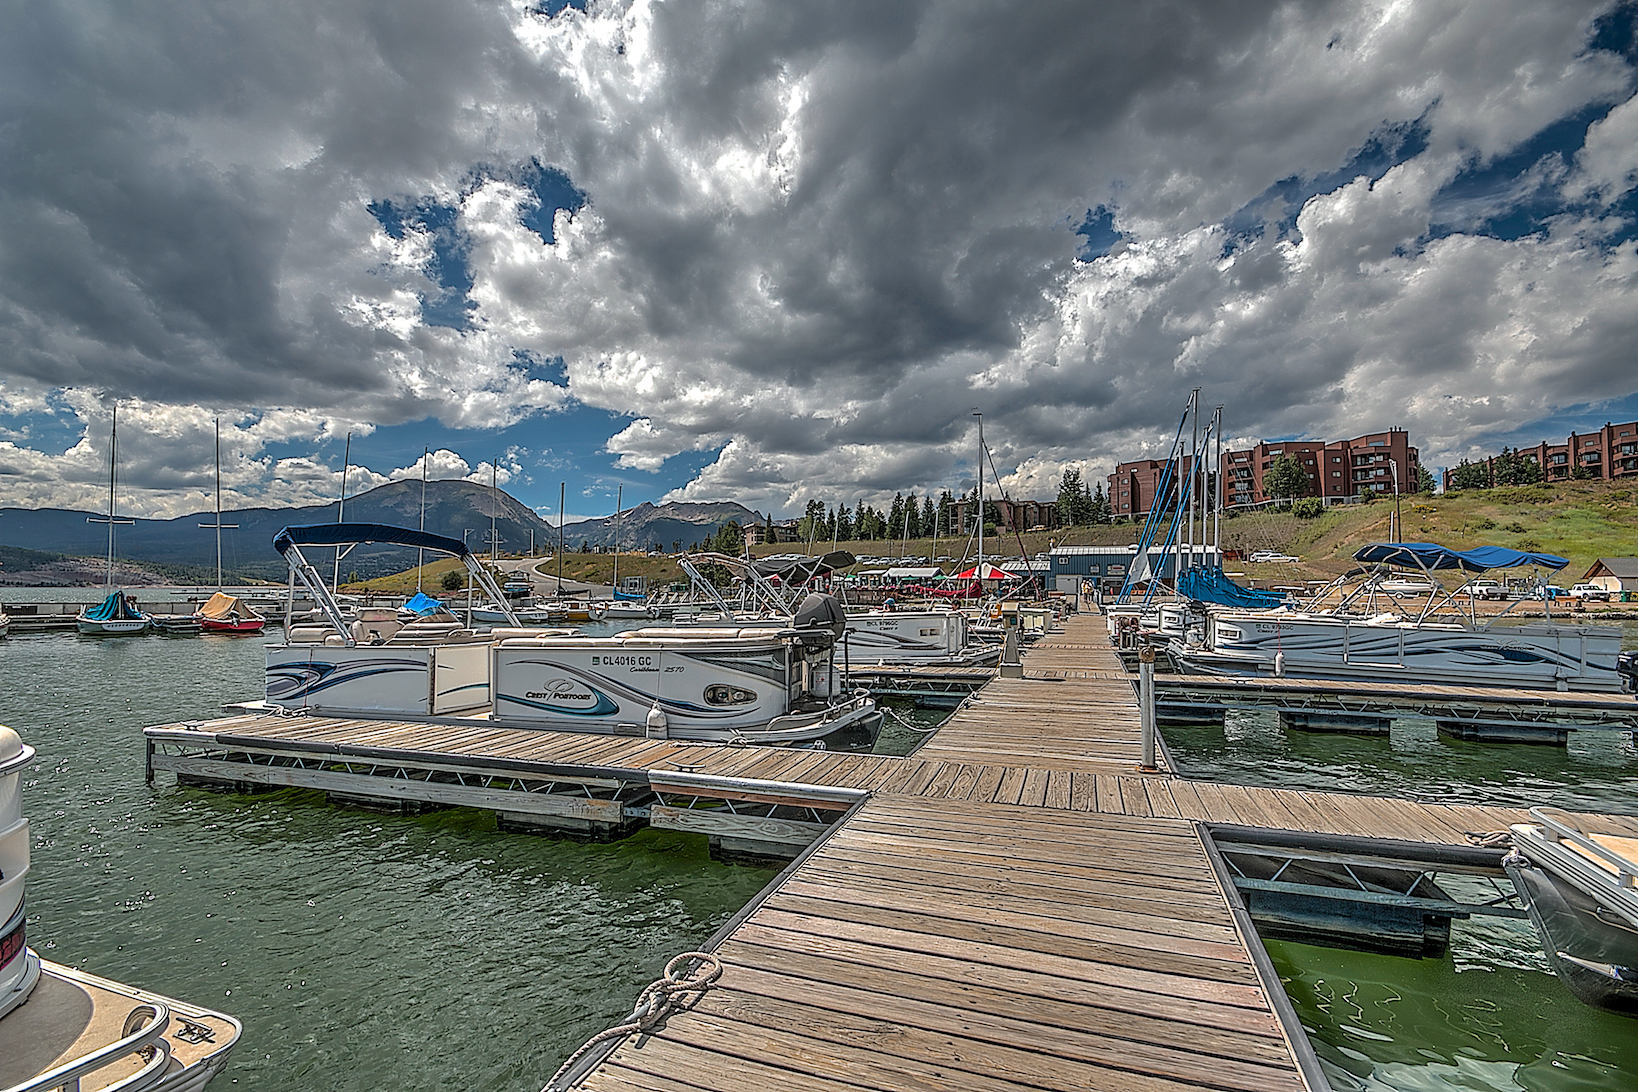 View from a dock at Dillon Marina looking back at the Marina